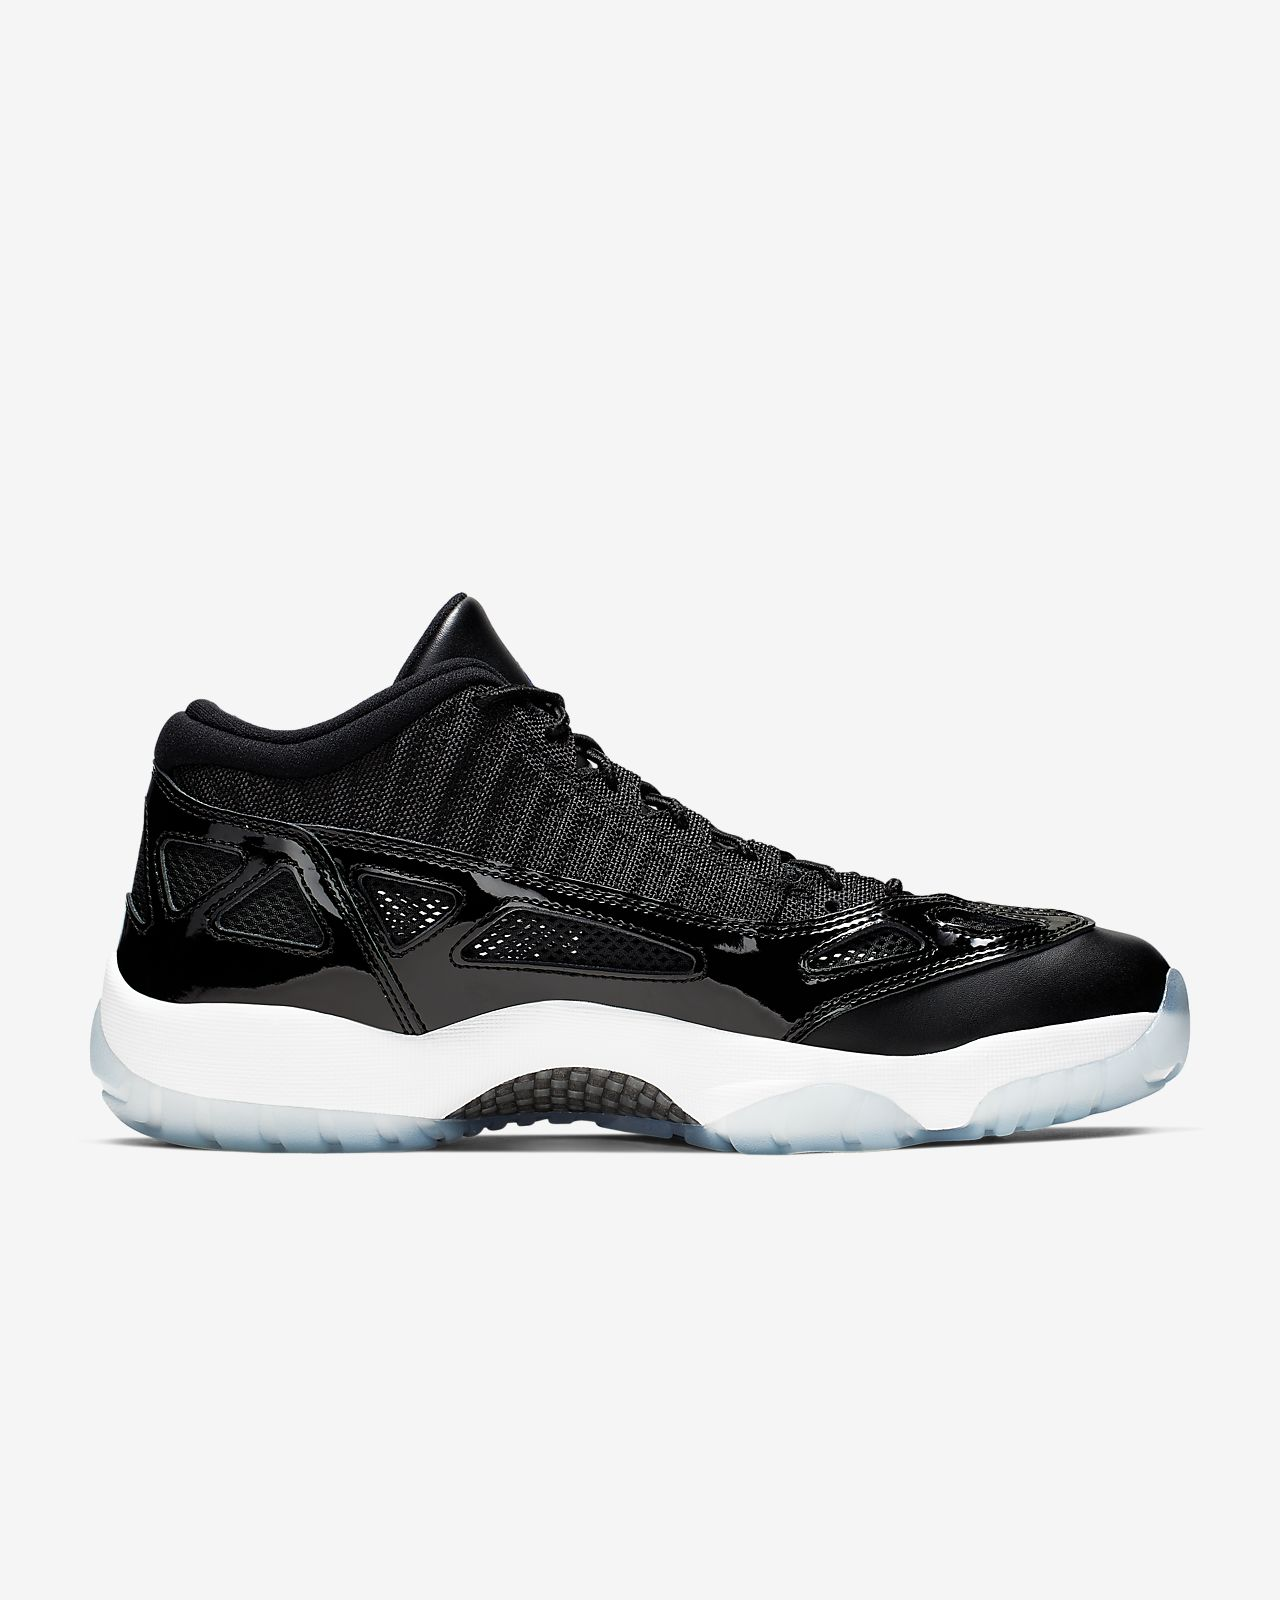 cheaper acc3d 81de4 Air Jordan 11 Retro Low IE Shoe